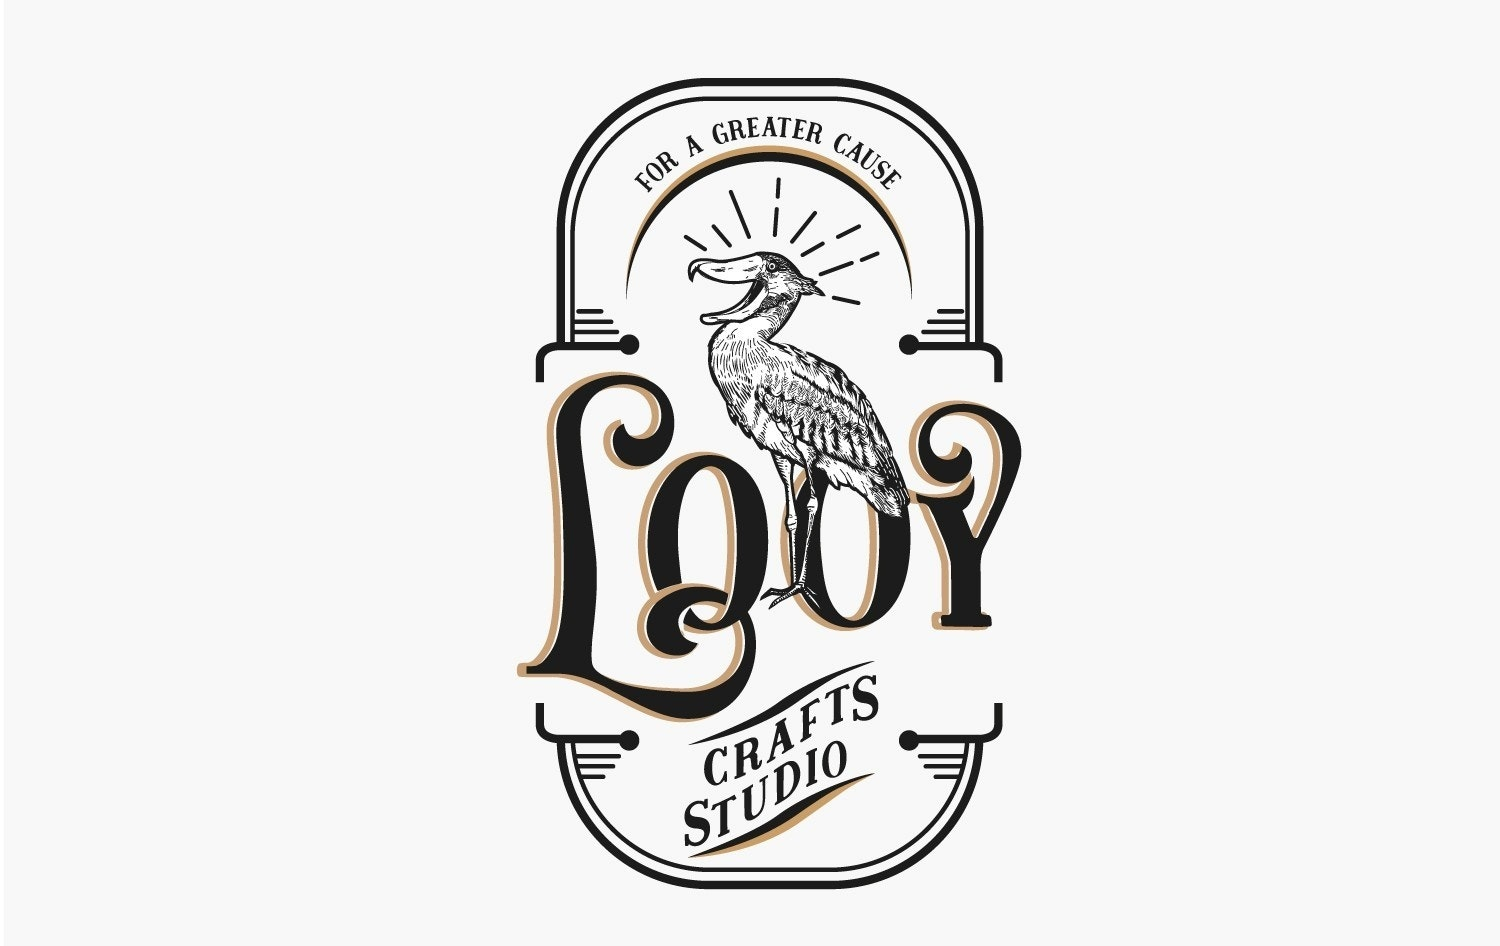 logo for Looy Crafts Studio